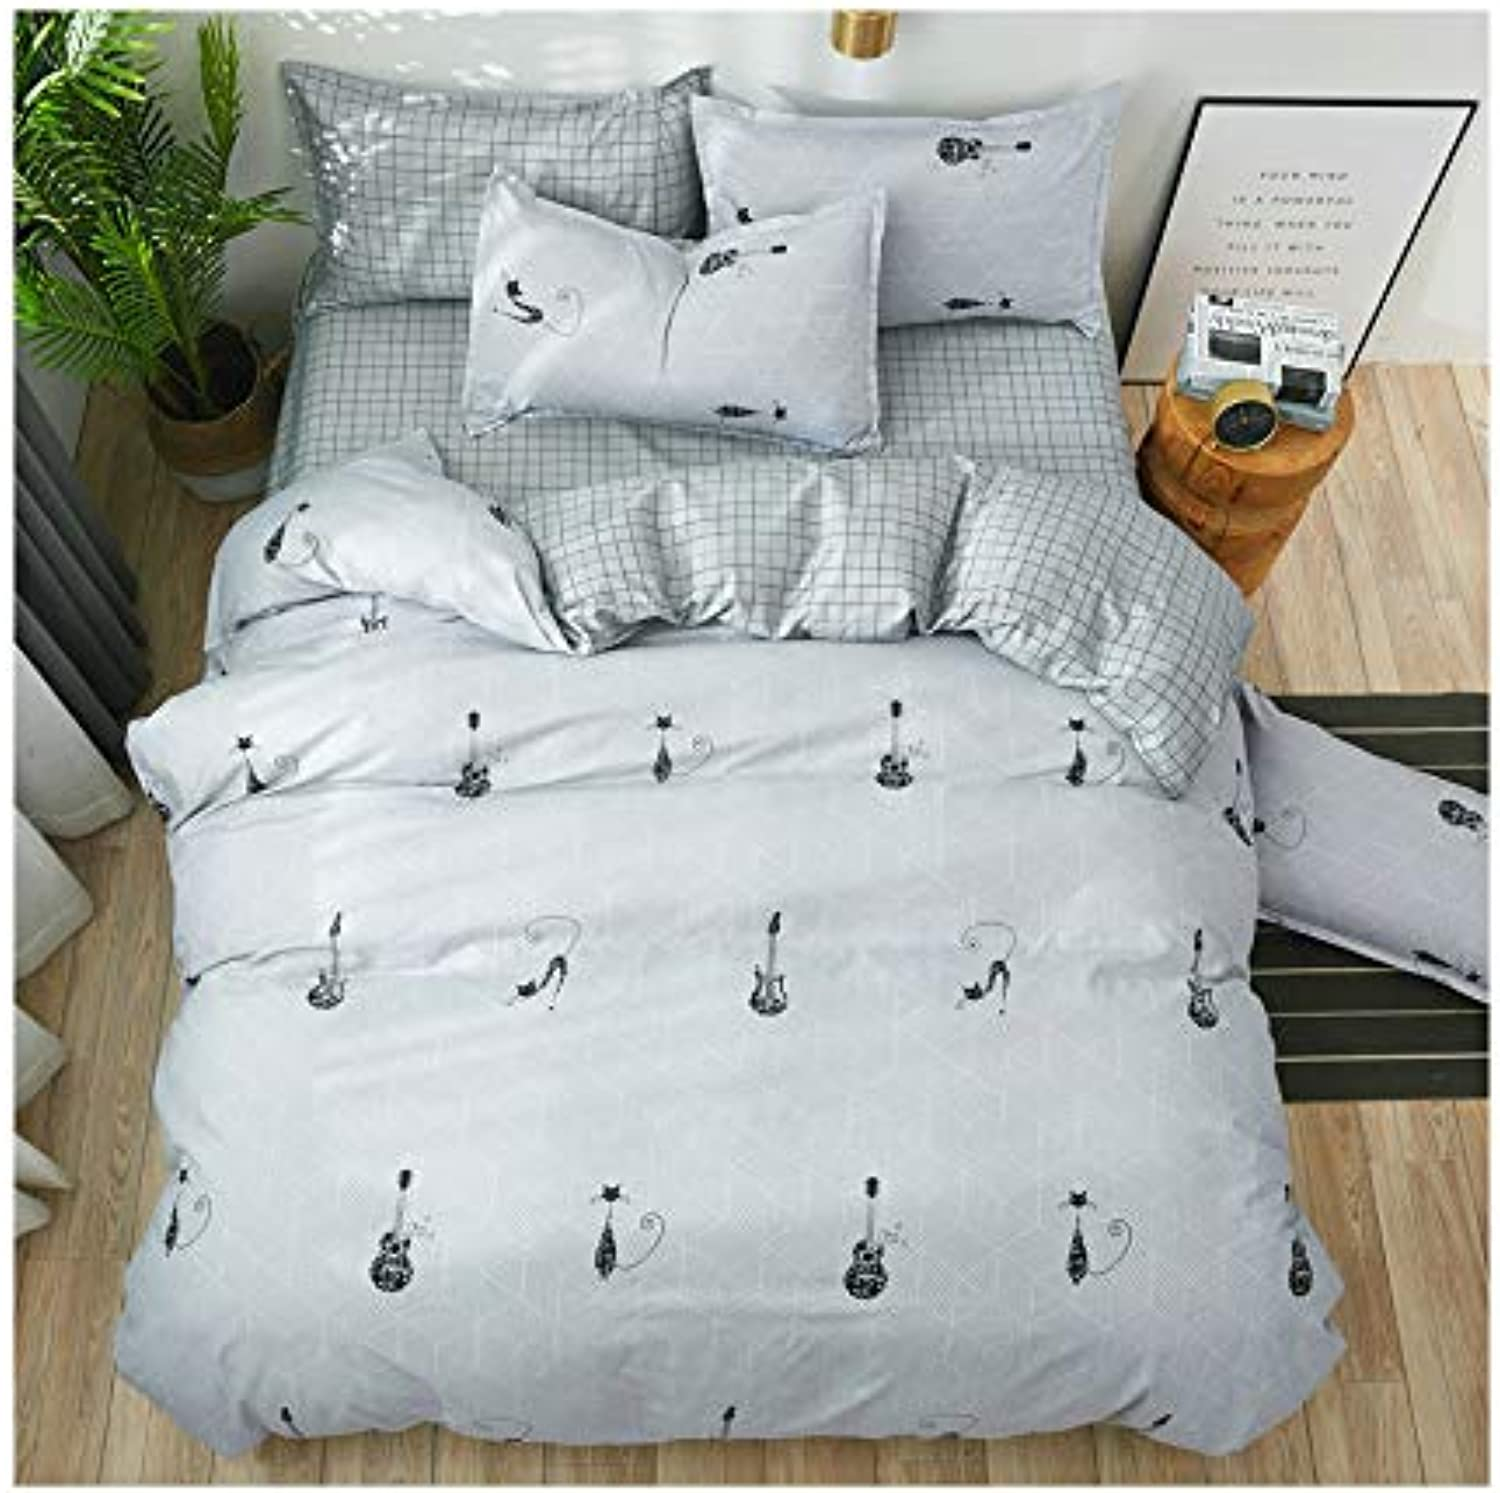 KFZ Bed Set (Twin Full Queen King Size) [4 Piece  Duvet Cover, Flat Sheet, 2 Pillow Cases] No Comforter MJ1905 Cat Puppy Triangle Design for Kids Sheets Set (Guitar Cat, Multi, Full 70 x86 )